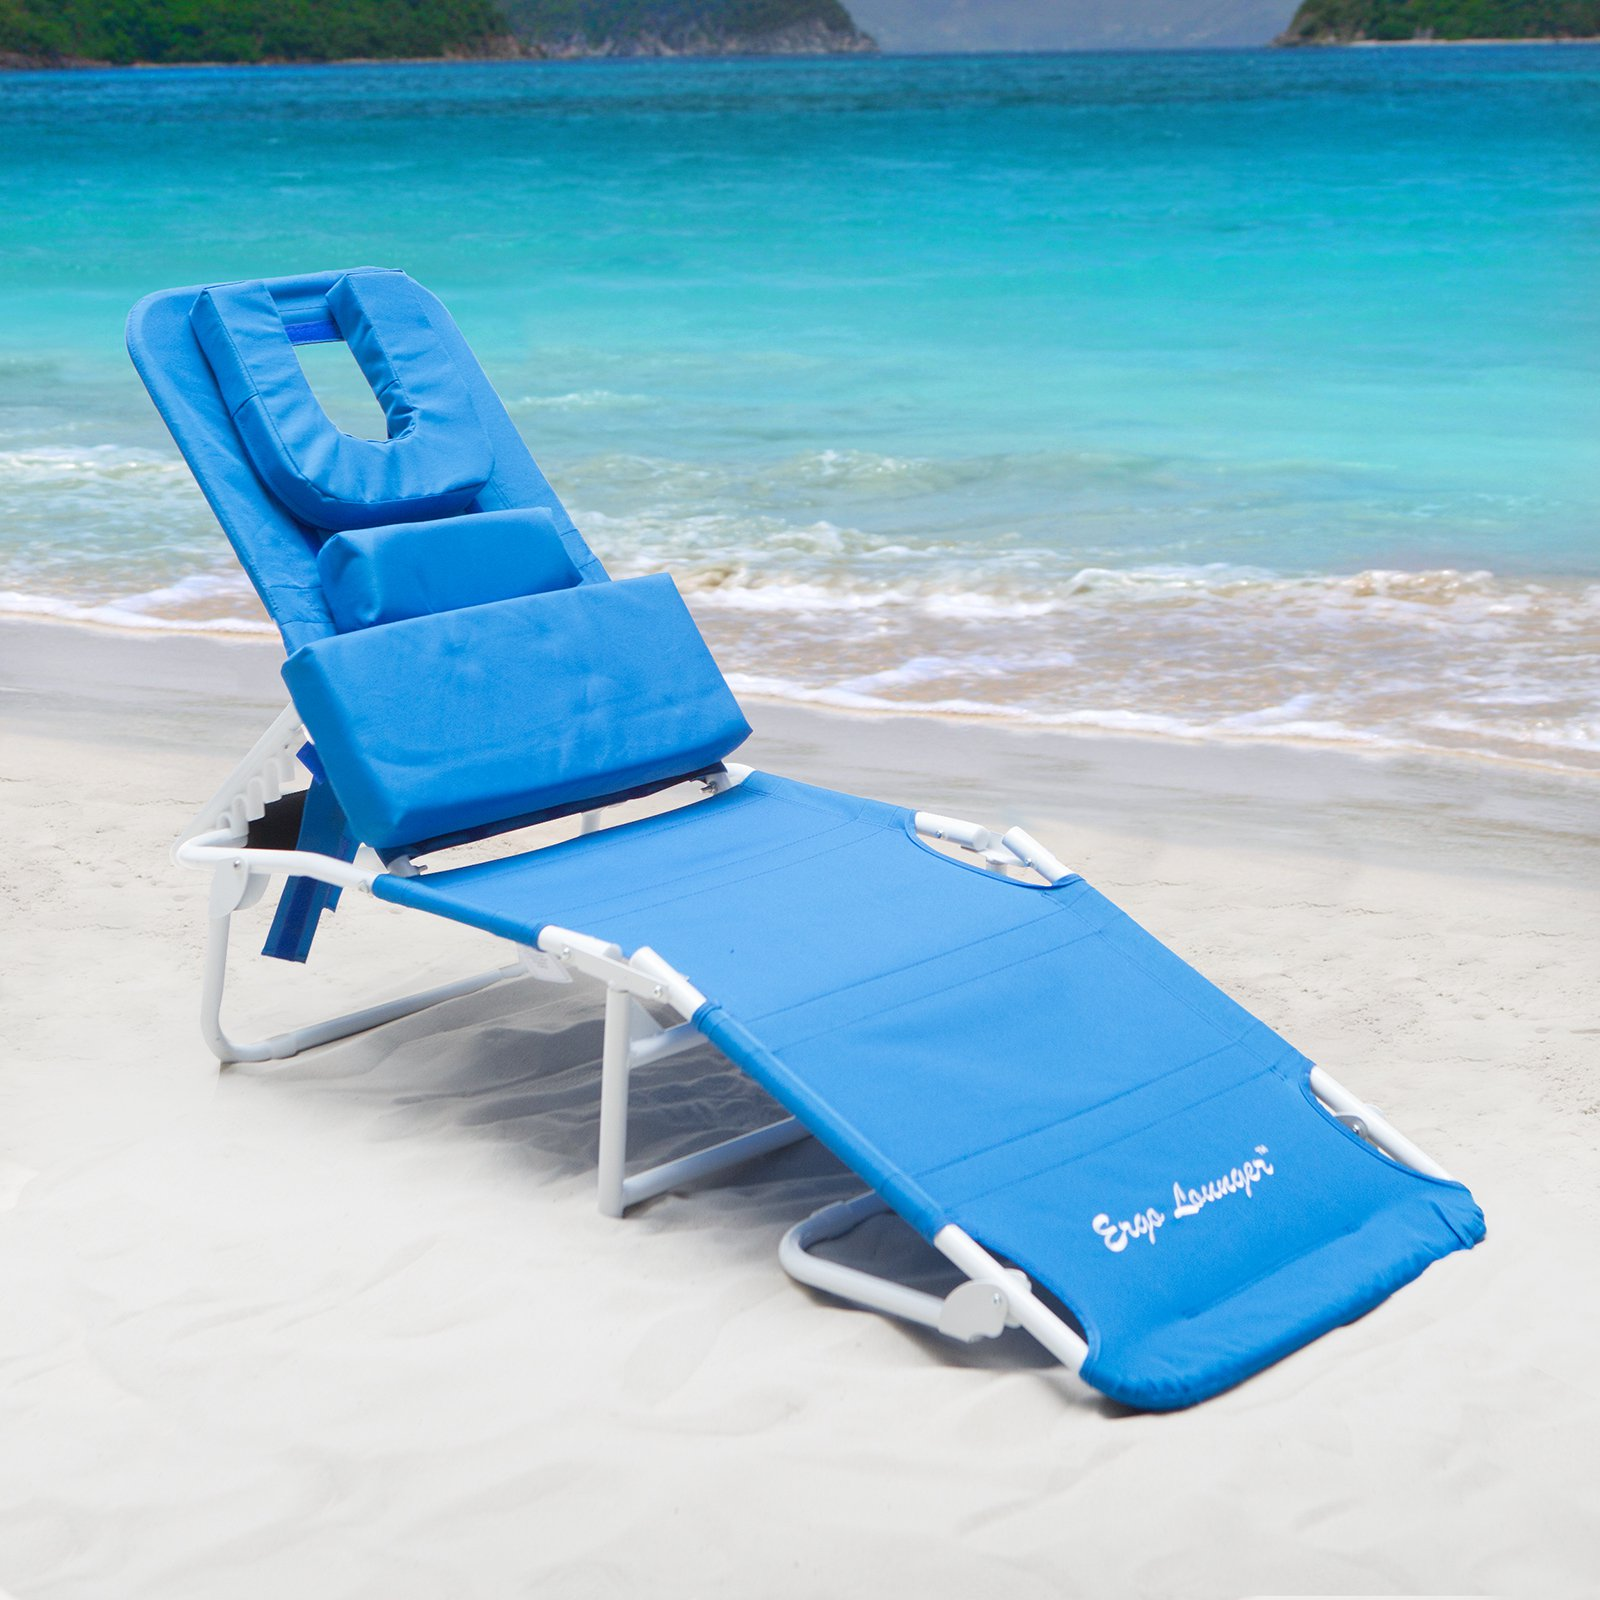 Ergo Lounger RS Beach Chaise Lounge